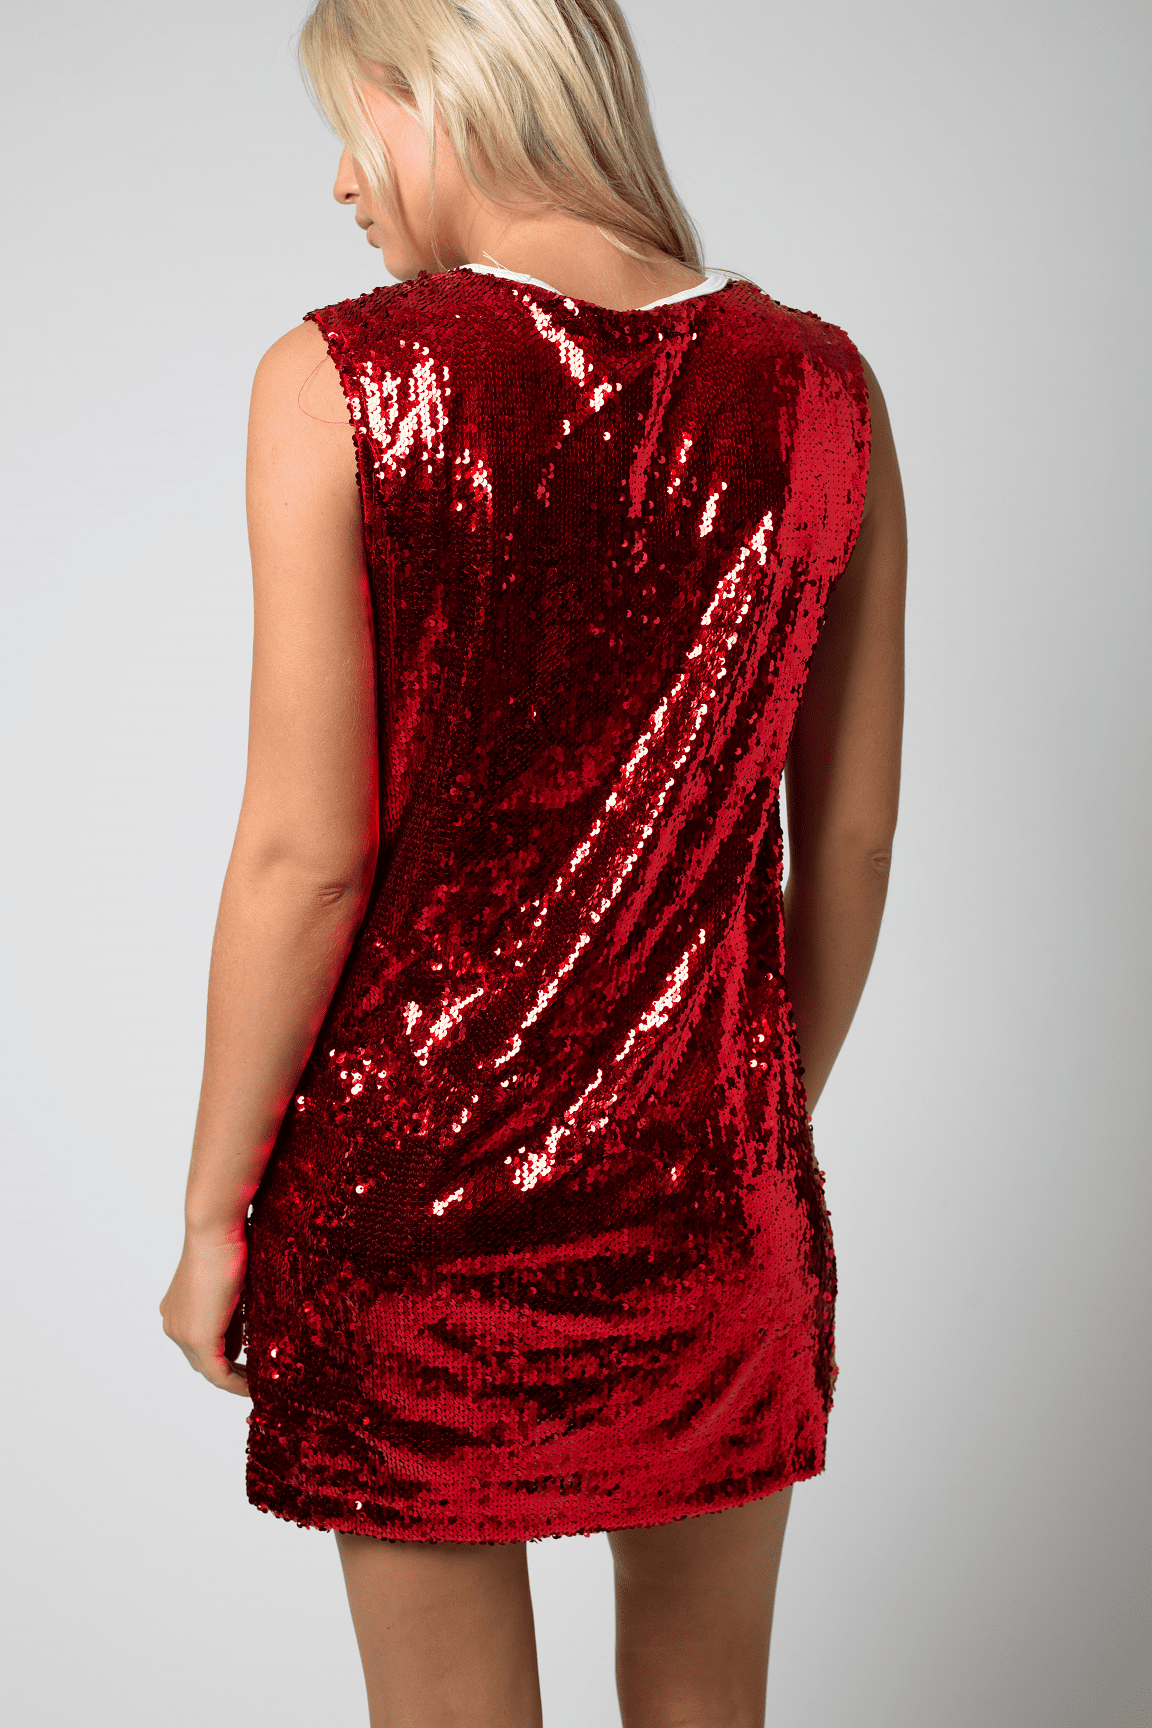 Liquor n Poker - Varsity basketball vest dress in red sequin and number 95 - Liquor N Poker  Liquor N Poker